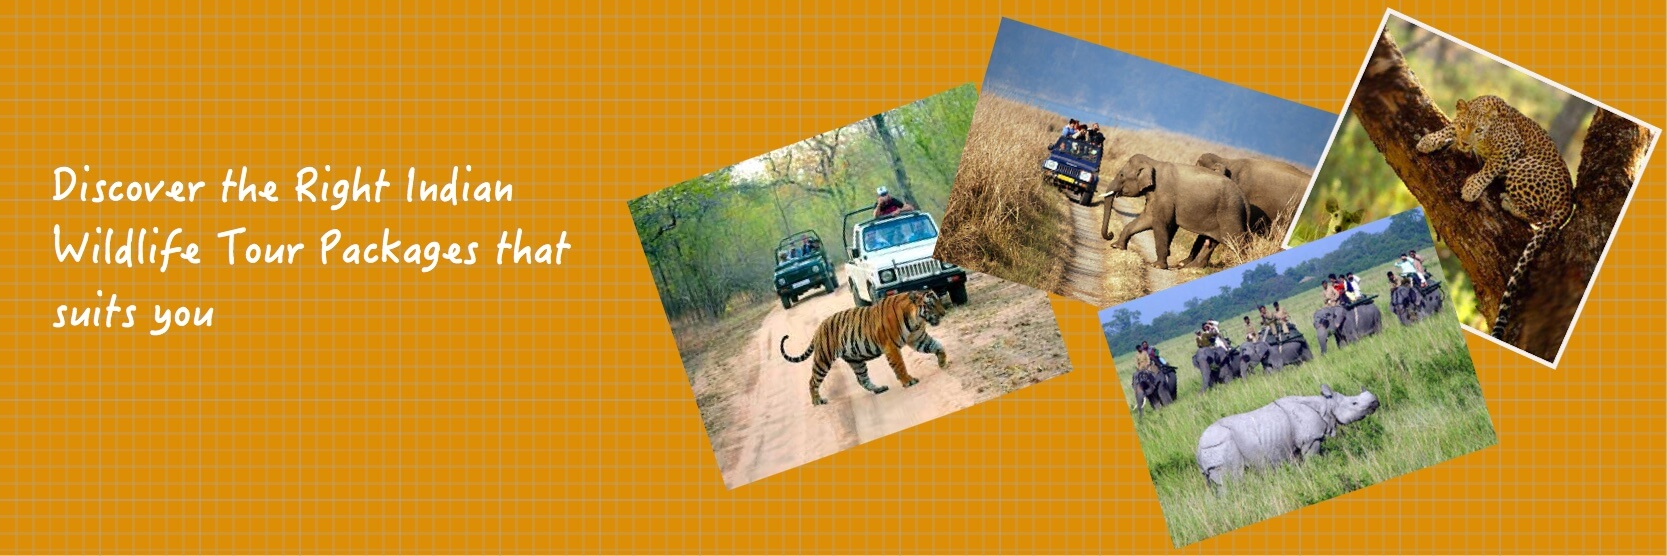 app is the best way to get all the details about Indian wildlife sanctuaries (best travel times, animal sightings, accommodations, prices, etc).